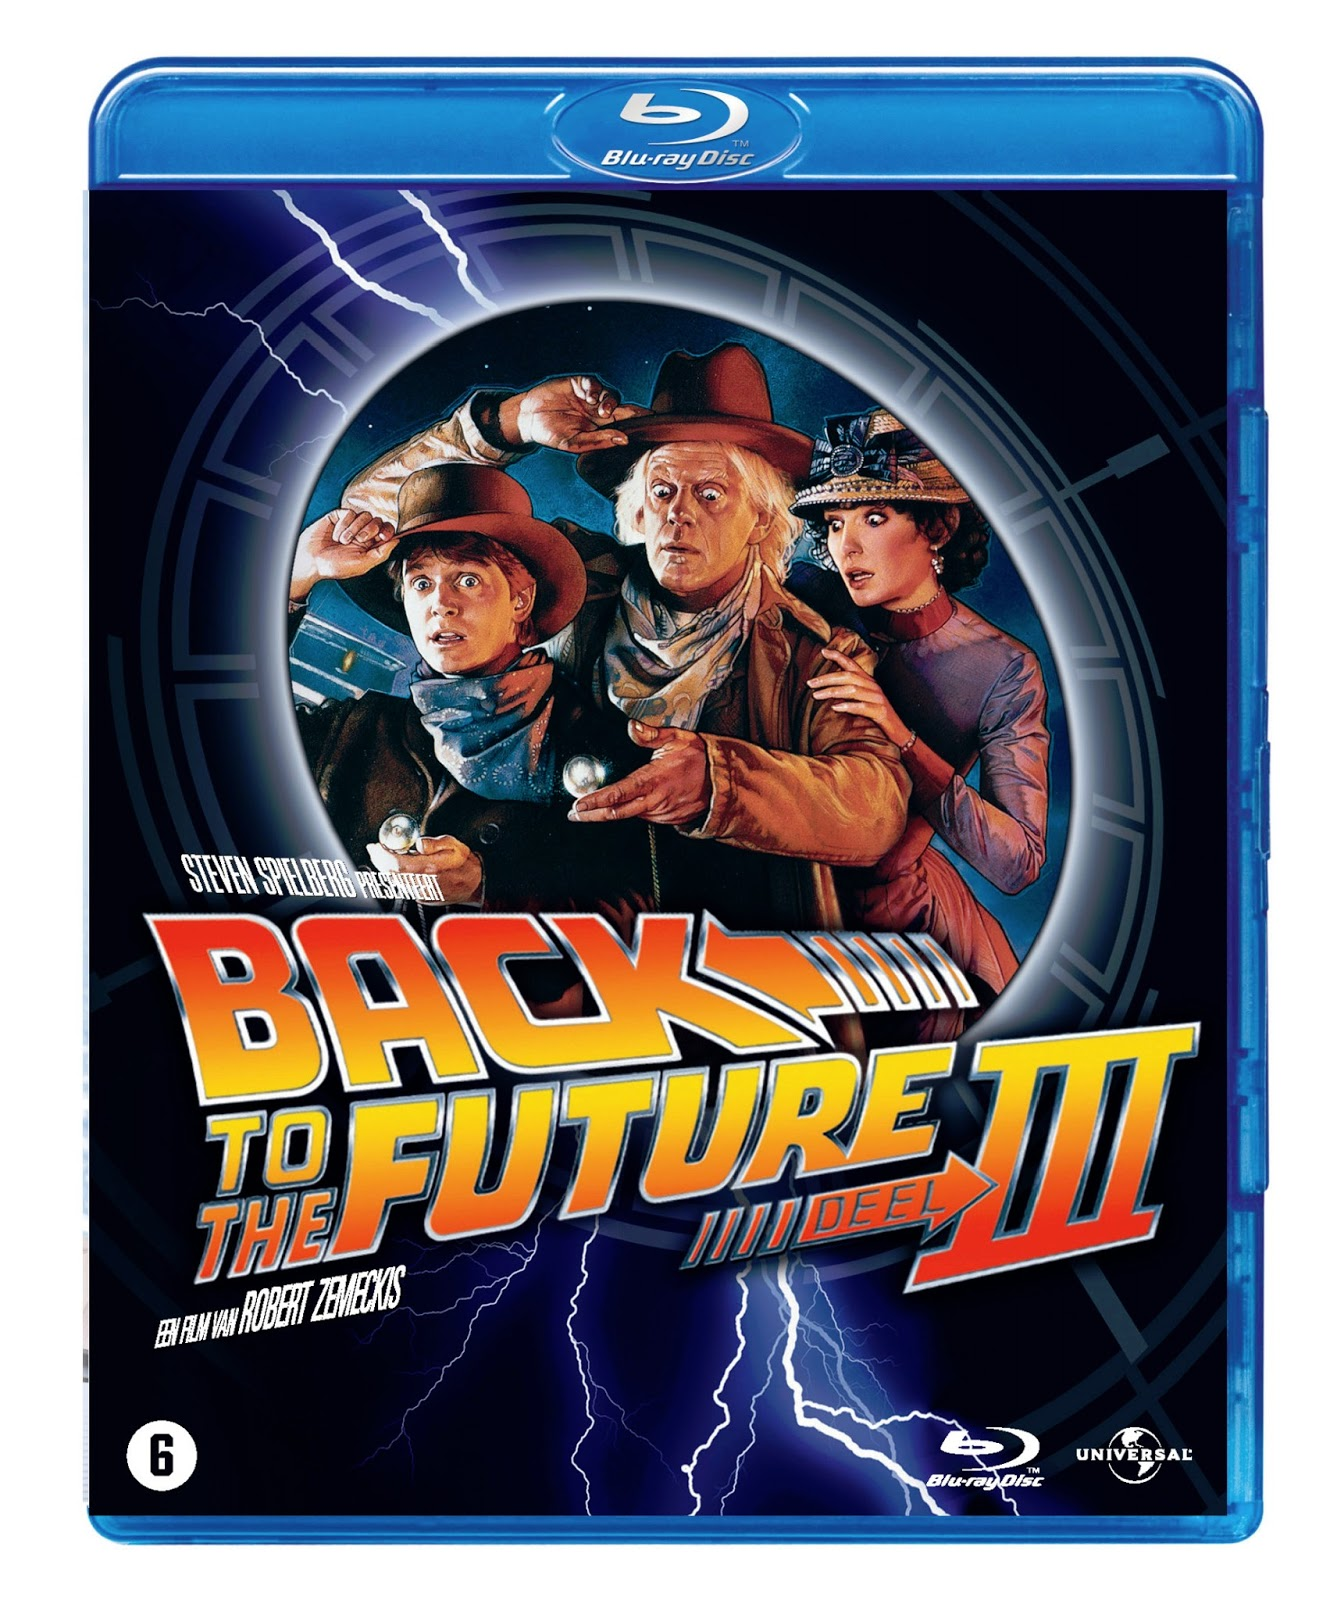 Imdb back to the future part iii 1990 newhairstylesformen2014 com